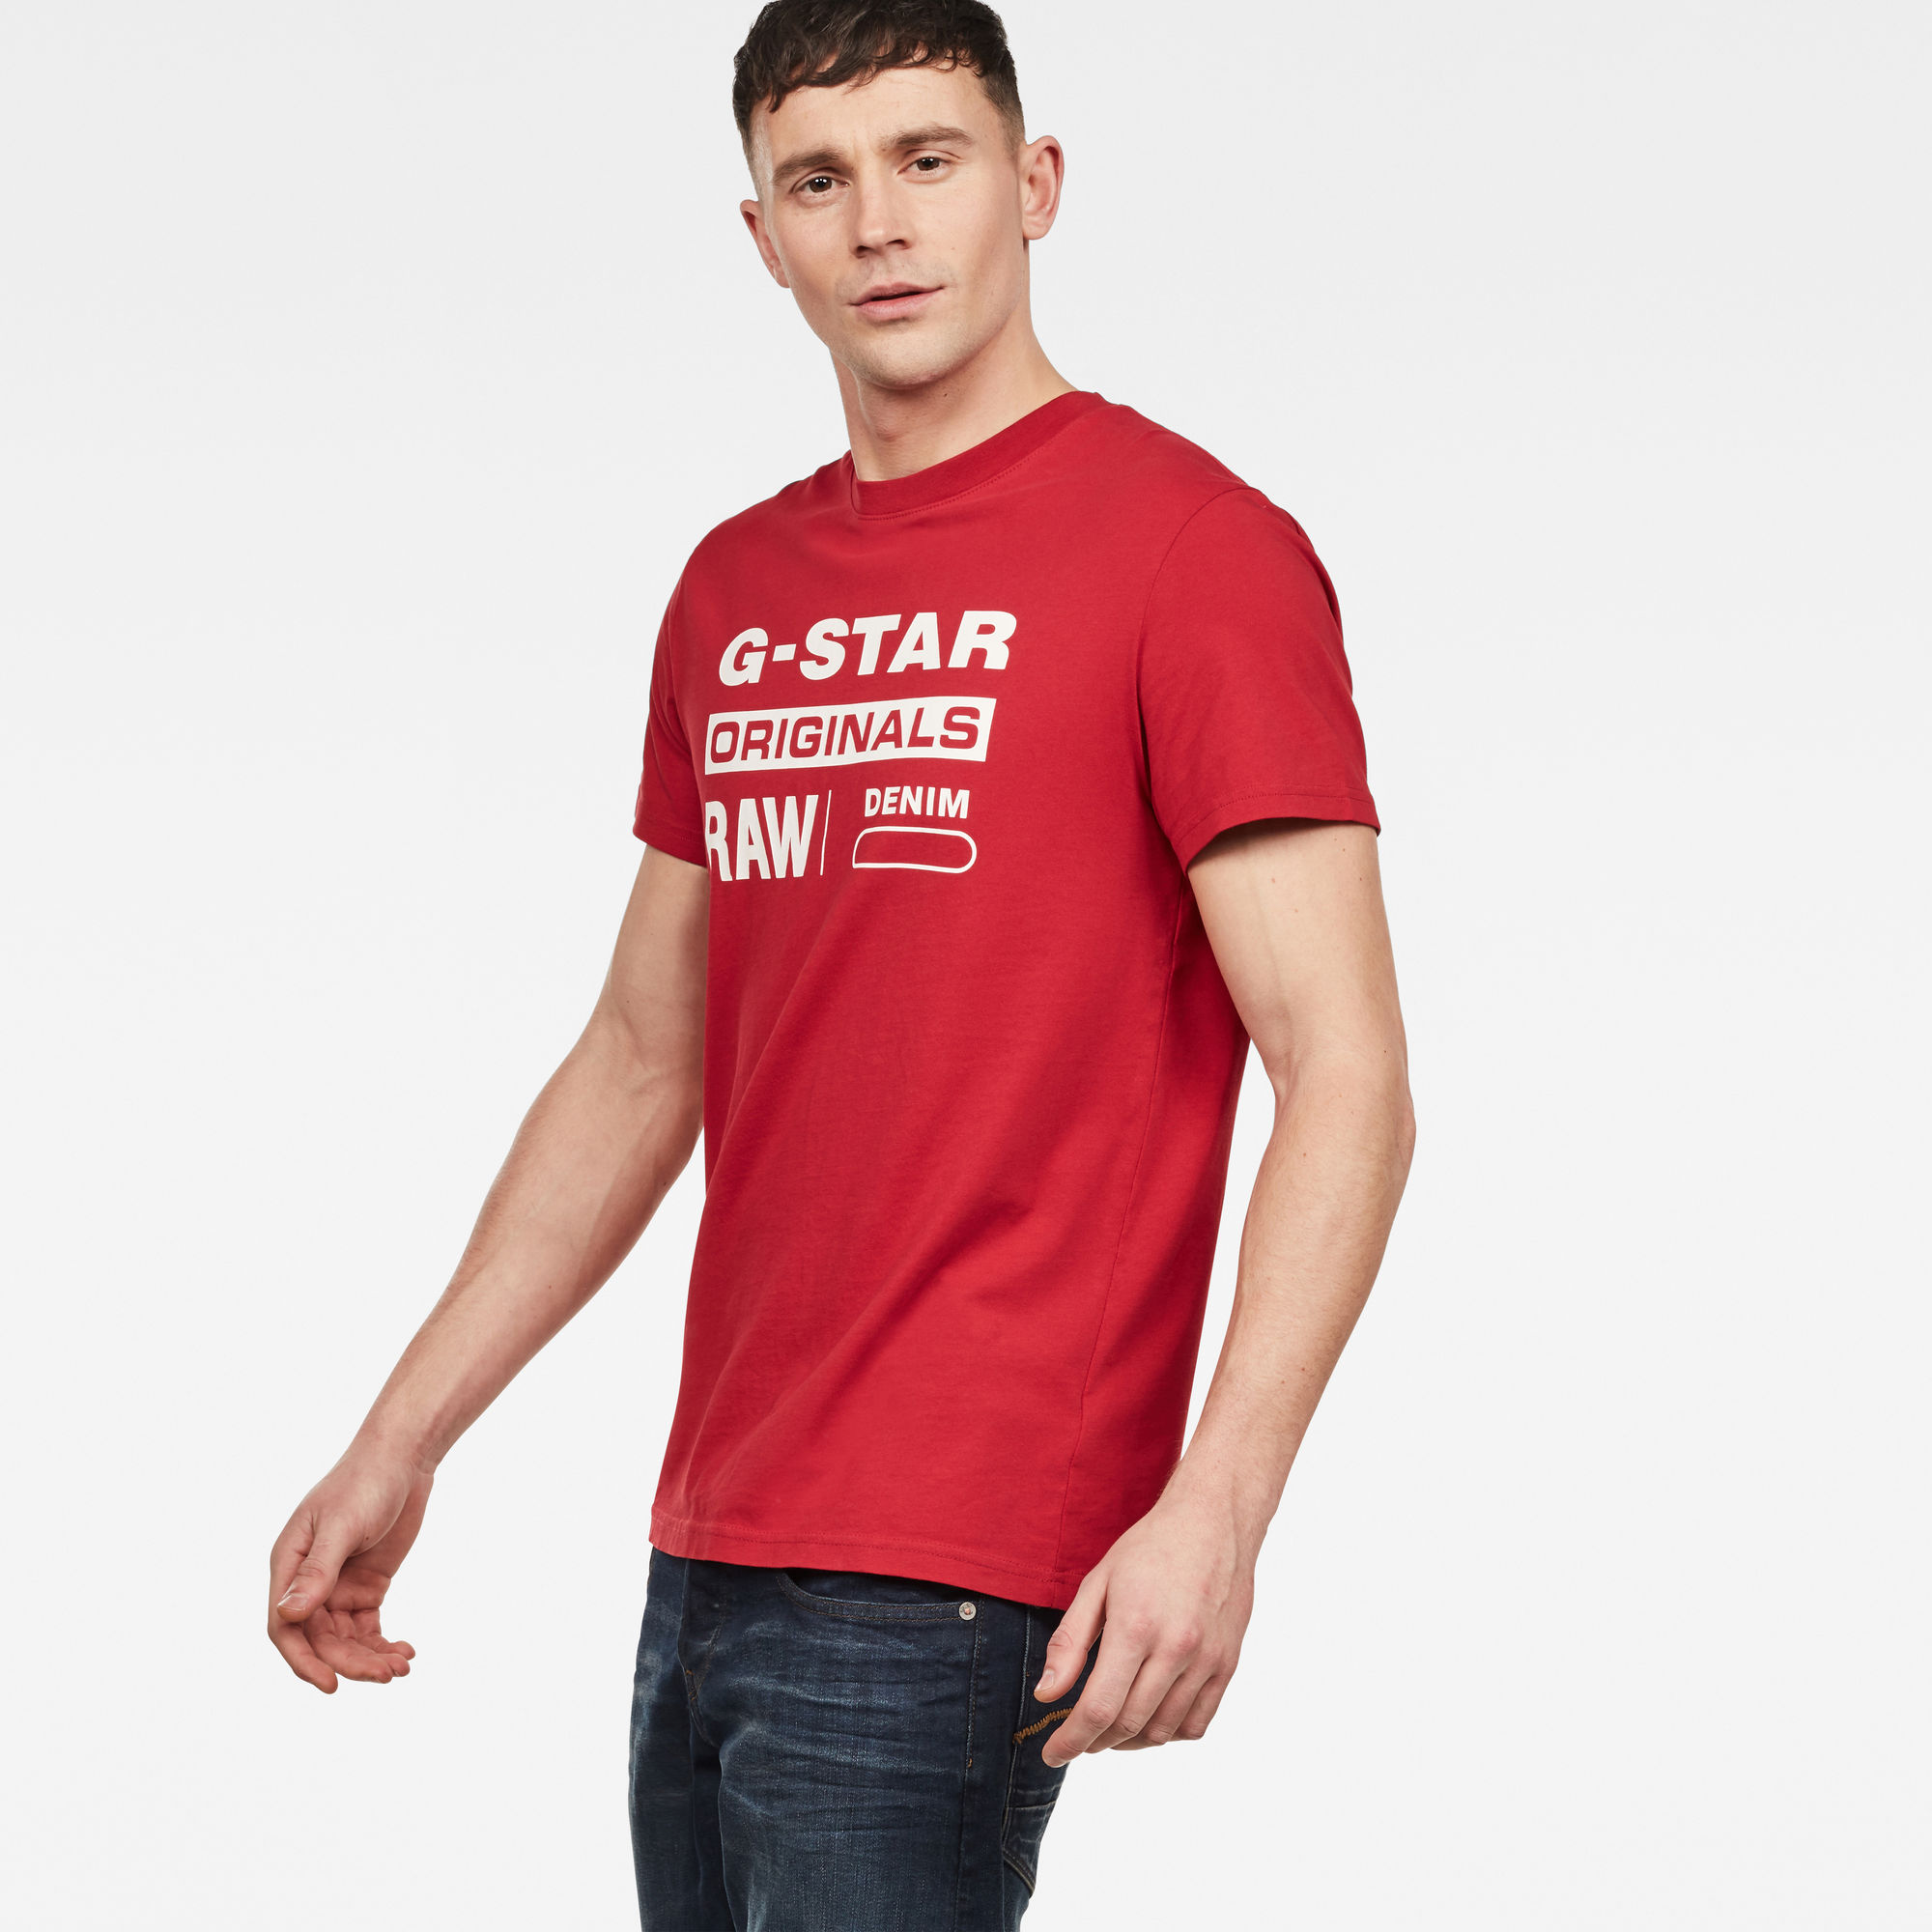 G-Star RAW Graphic 8 T-Shirt